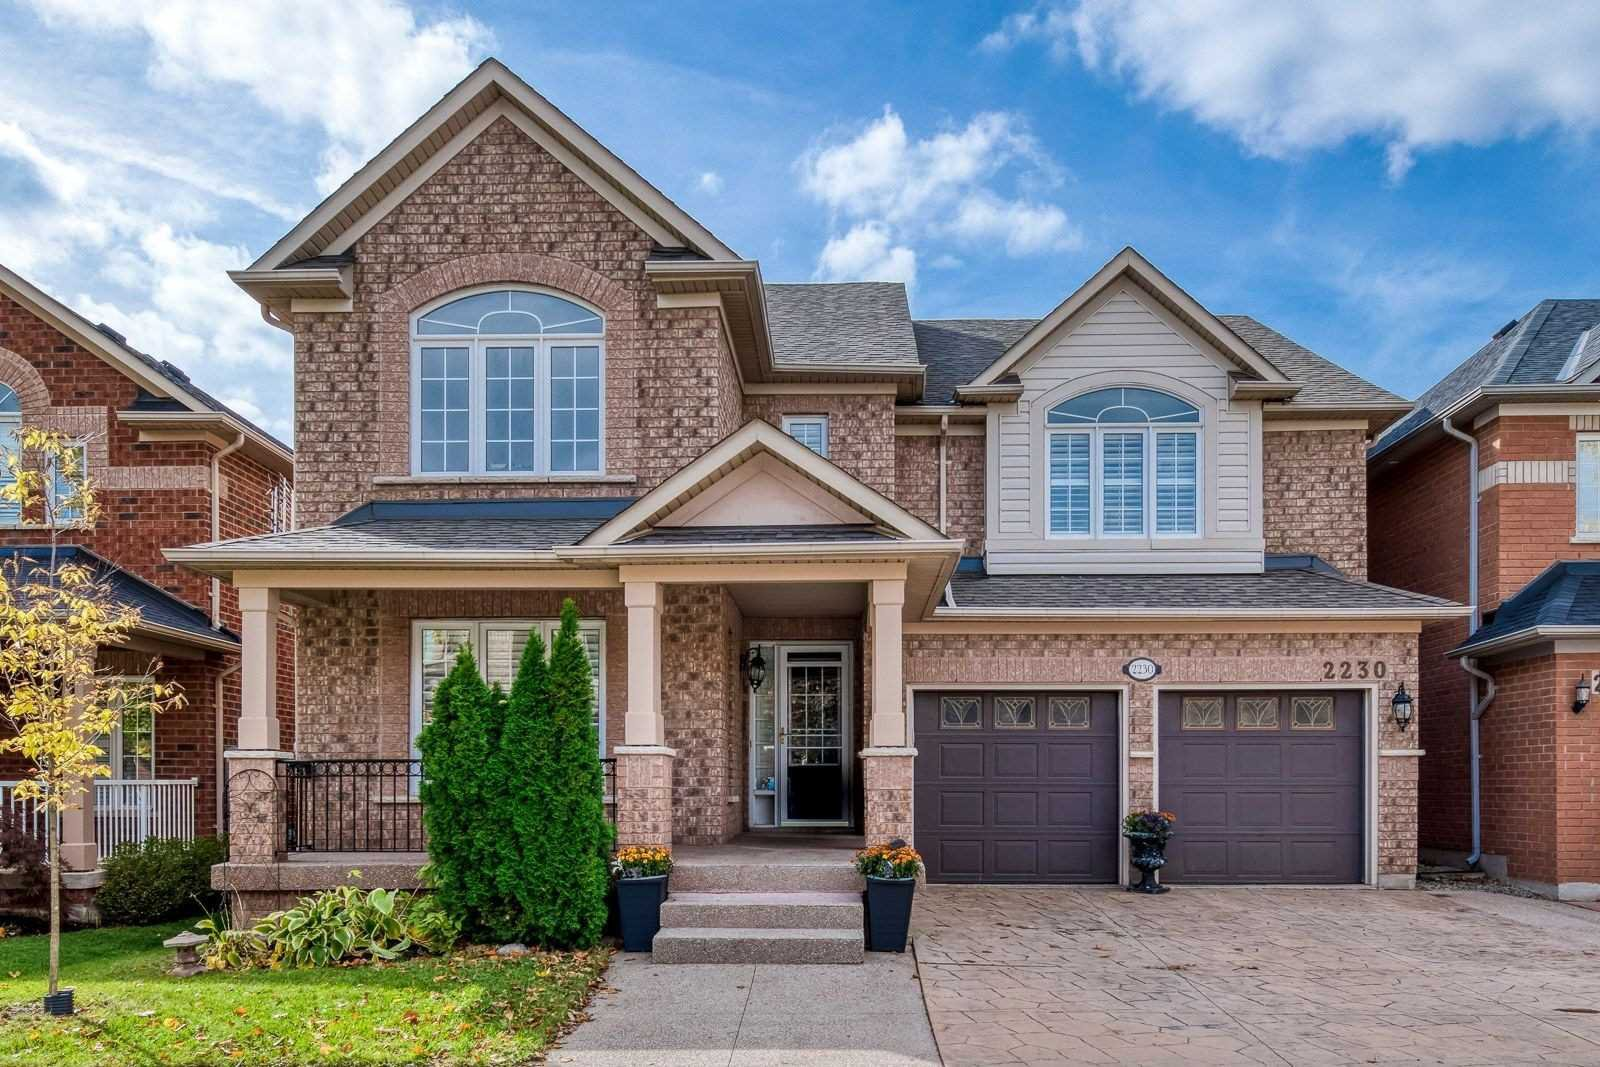 Main Photo: 2230 Empire Crescent in Burlington: Orchard House (2-Storey) for sale : MLS®# W4961821